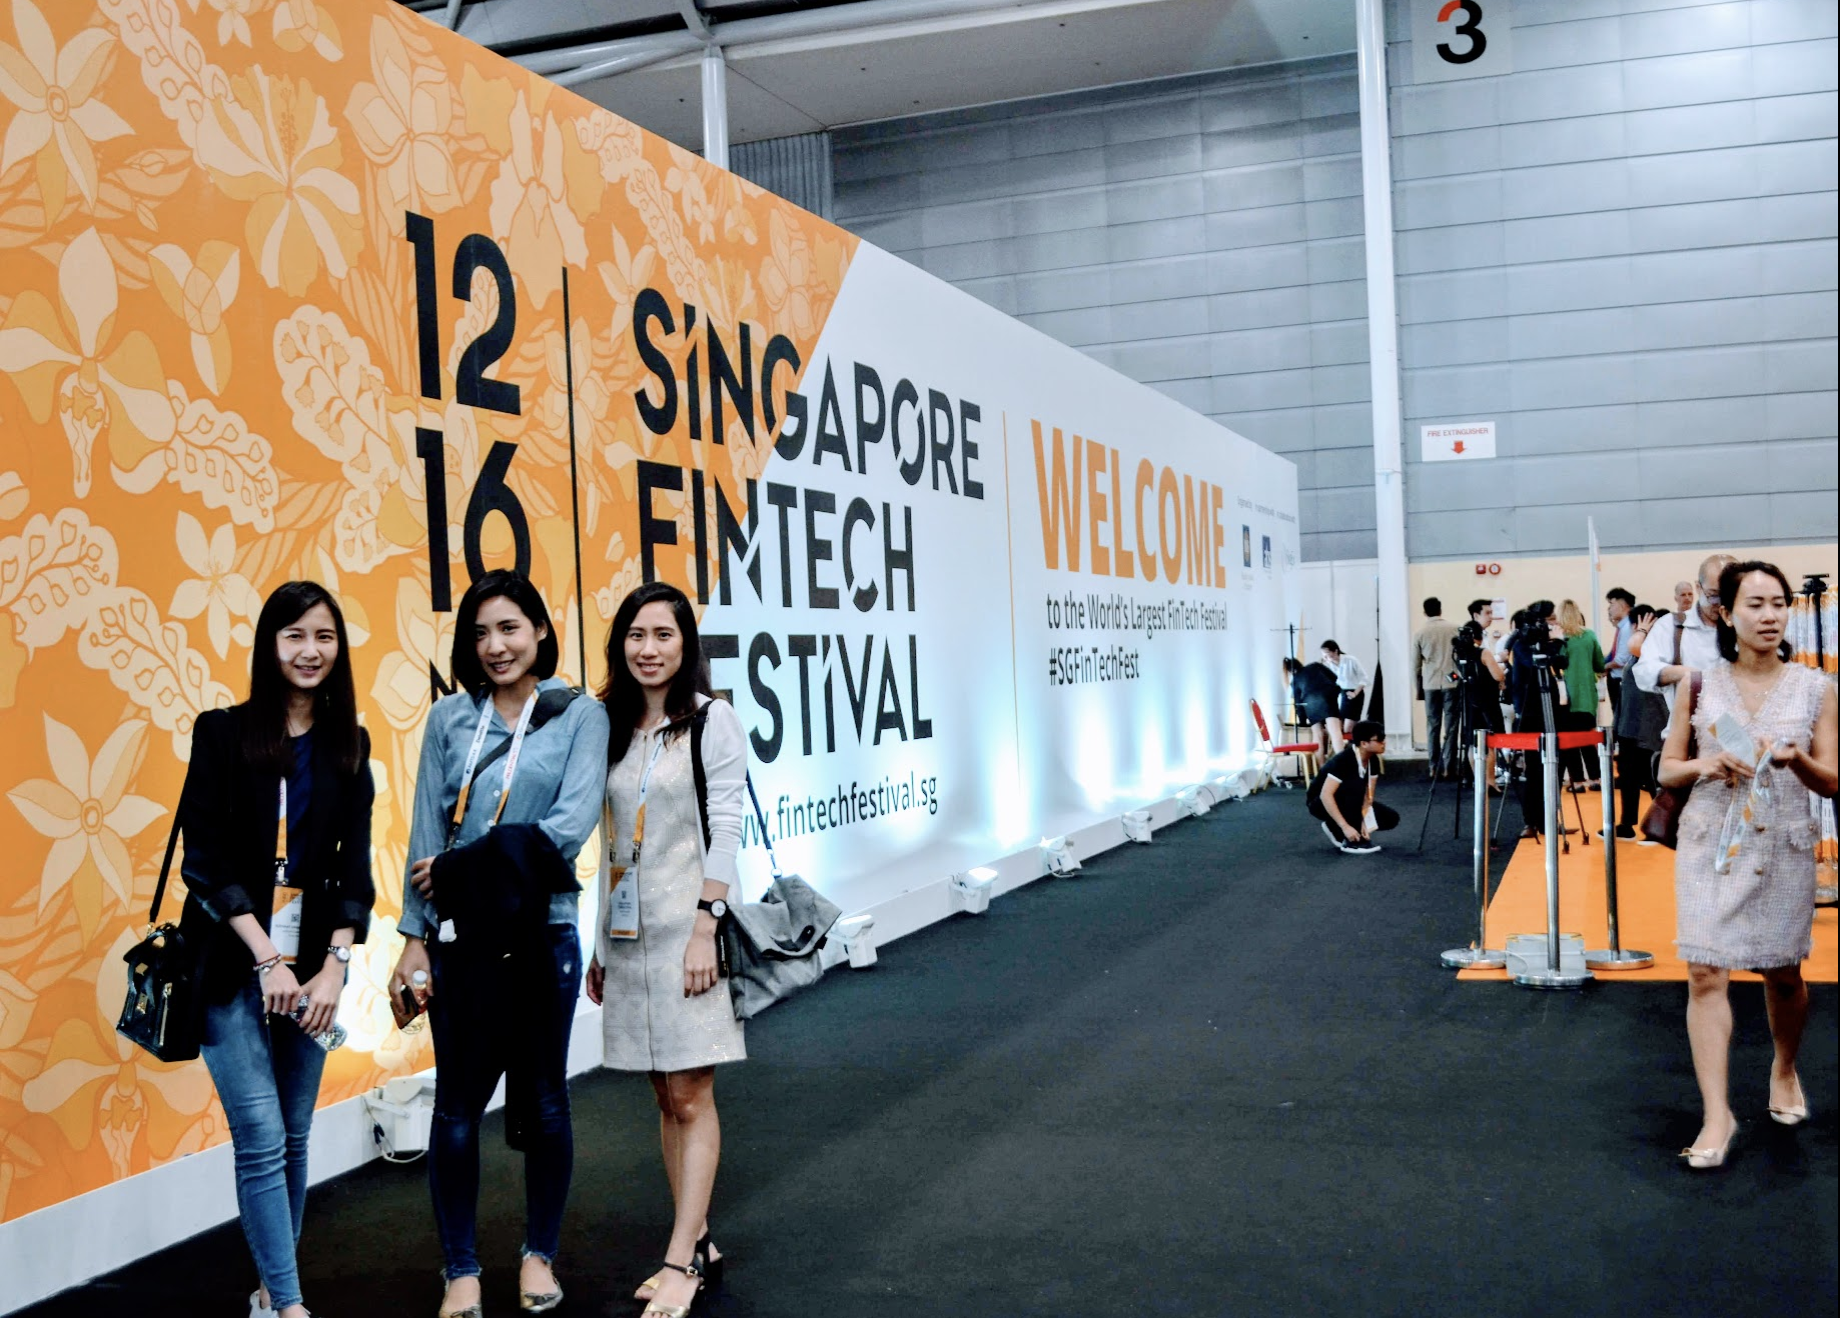 Attendees at Singapore Fintech Festival 2018. Photo: Connected to India